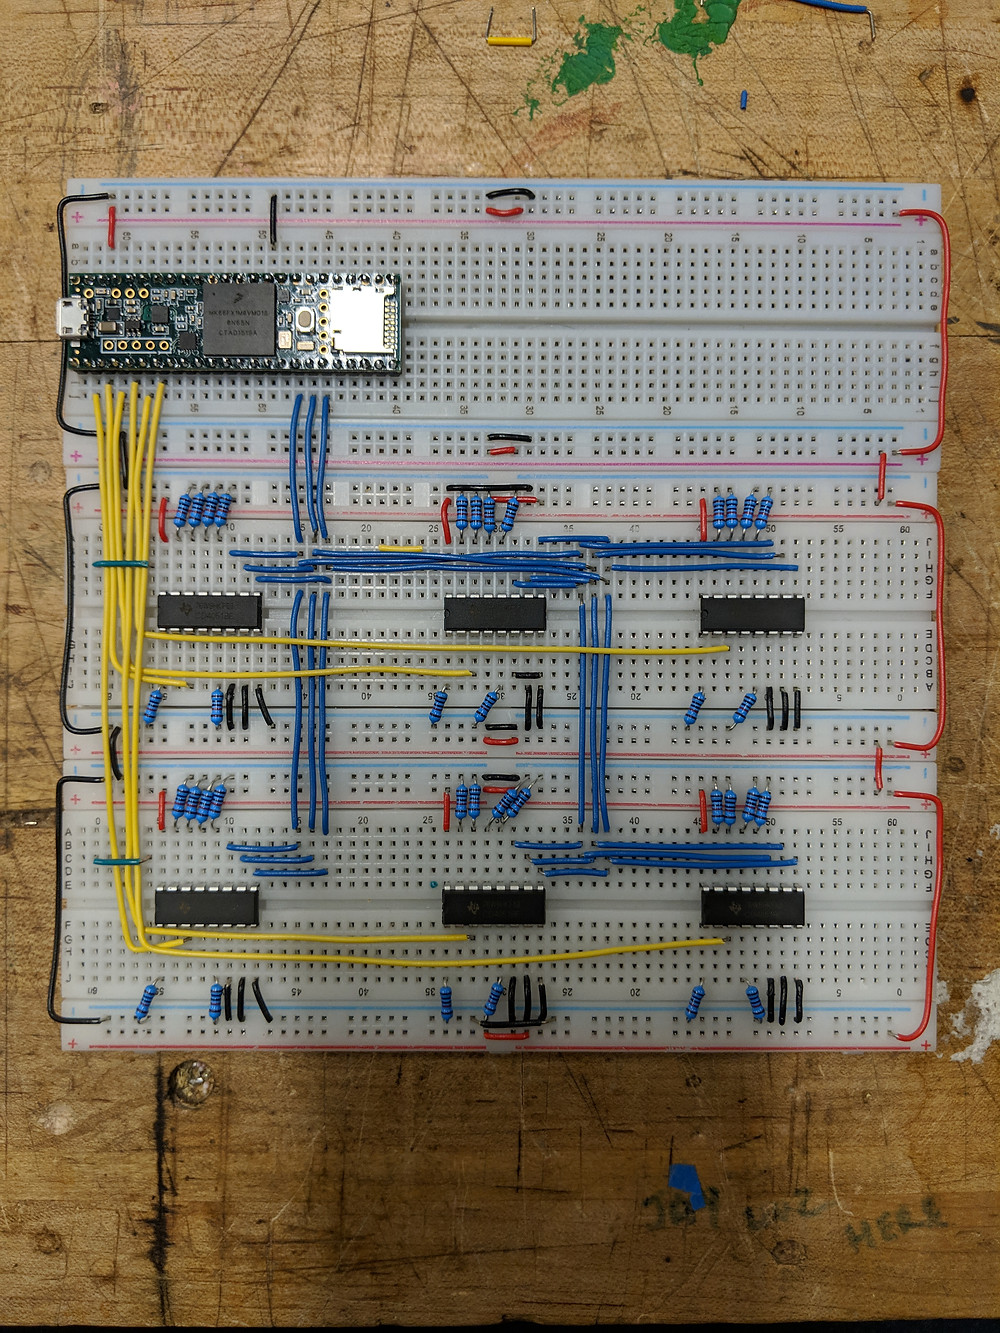 Final board - A Teensy 3.6 and 6 8-Channel multiplexers